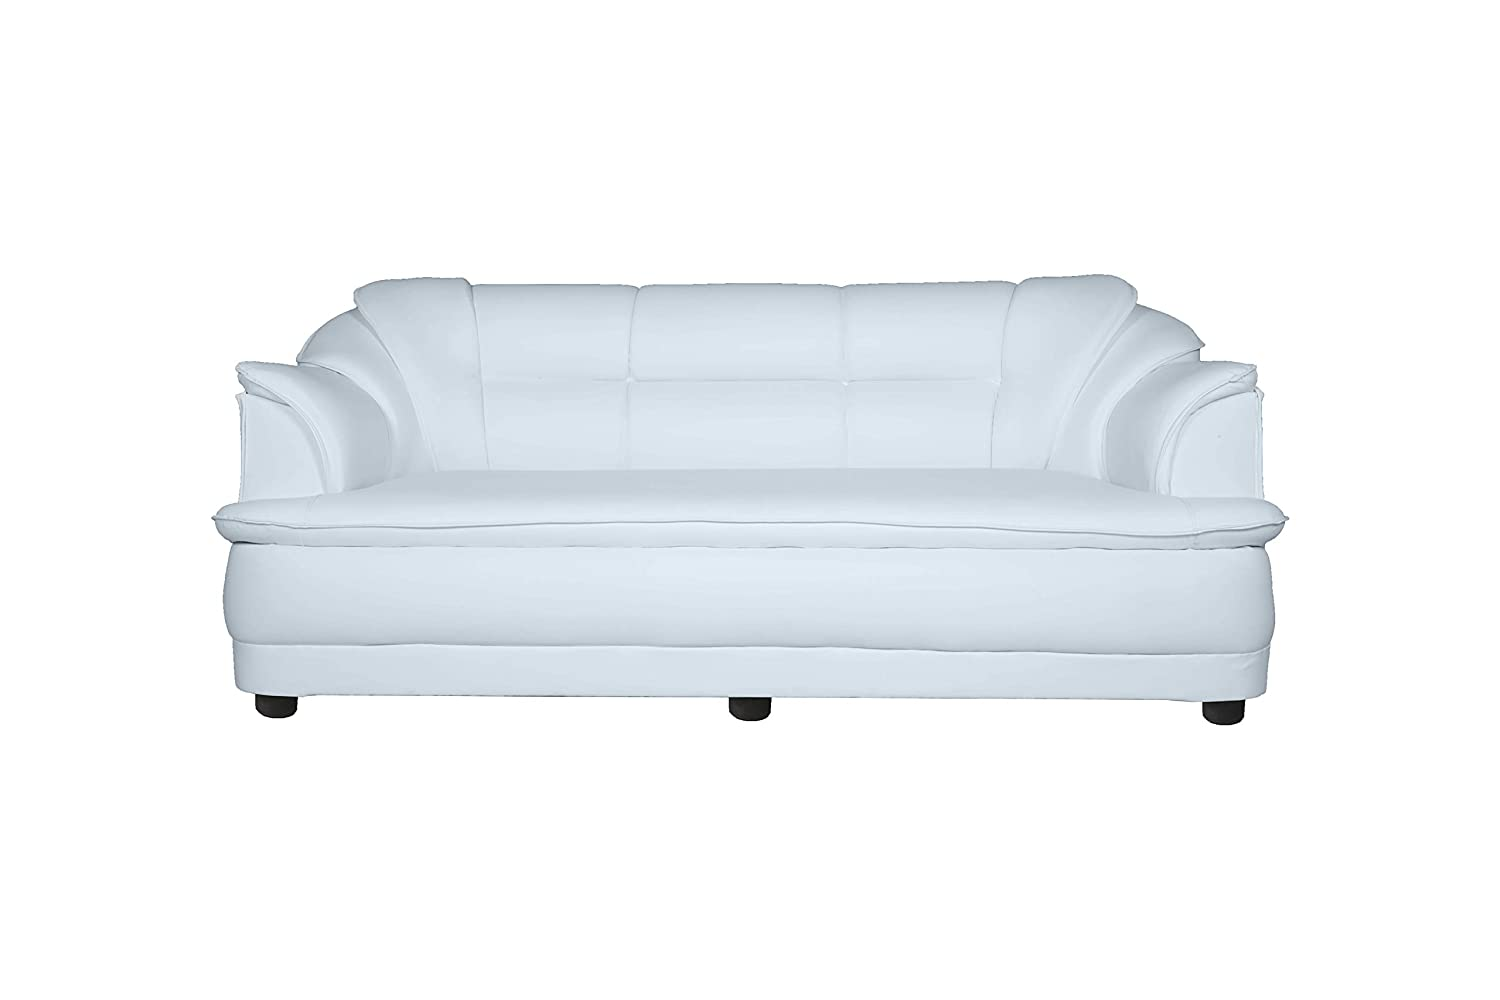 Cusery  3 seater sofa design for home [Colour - White]